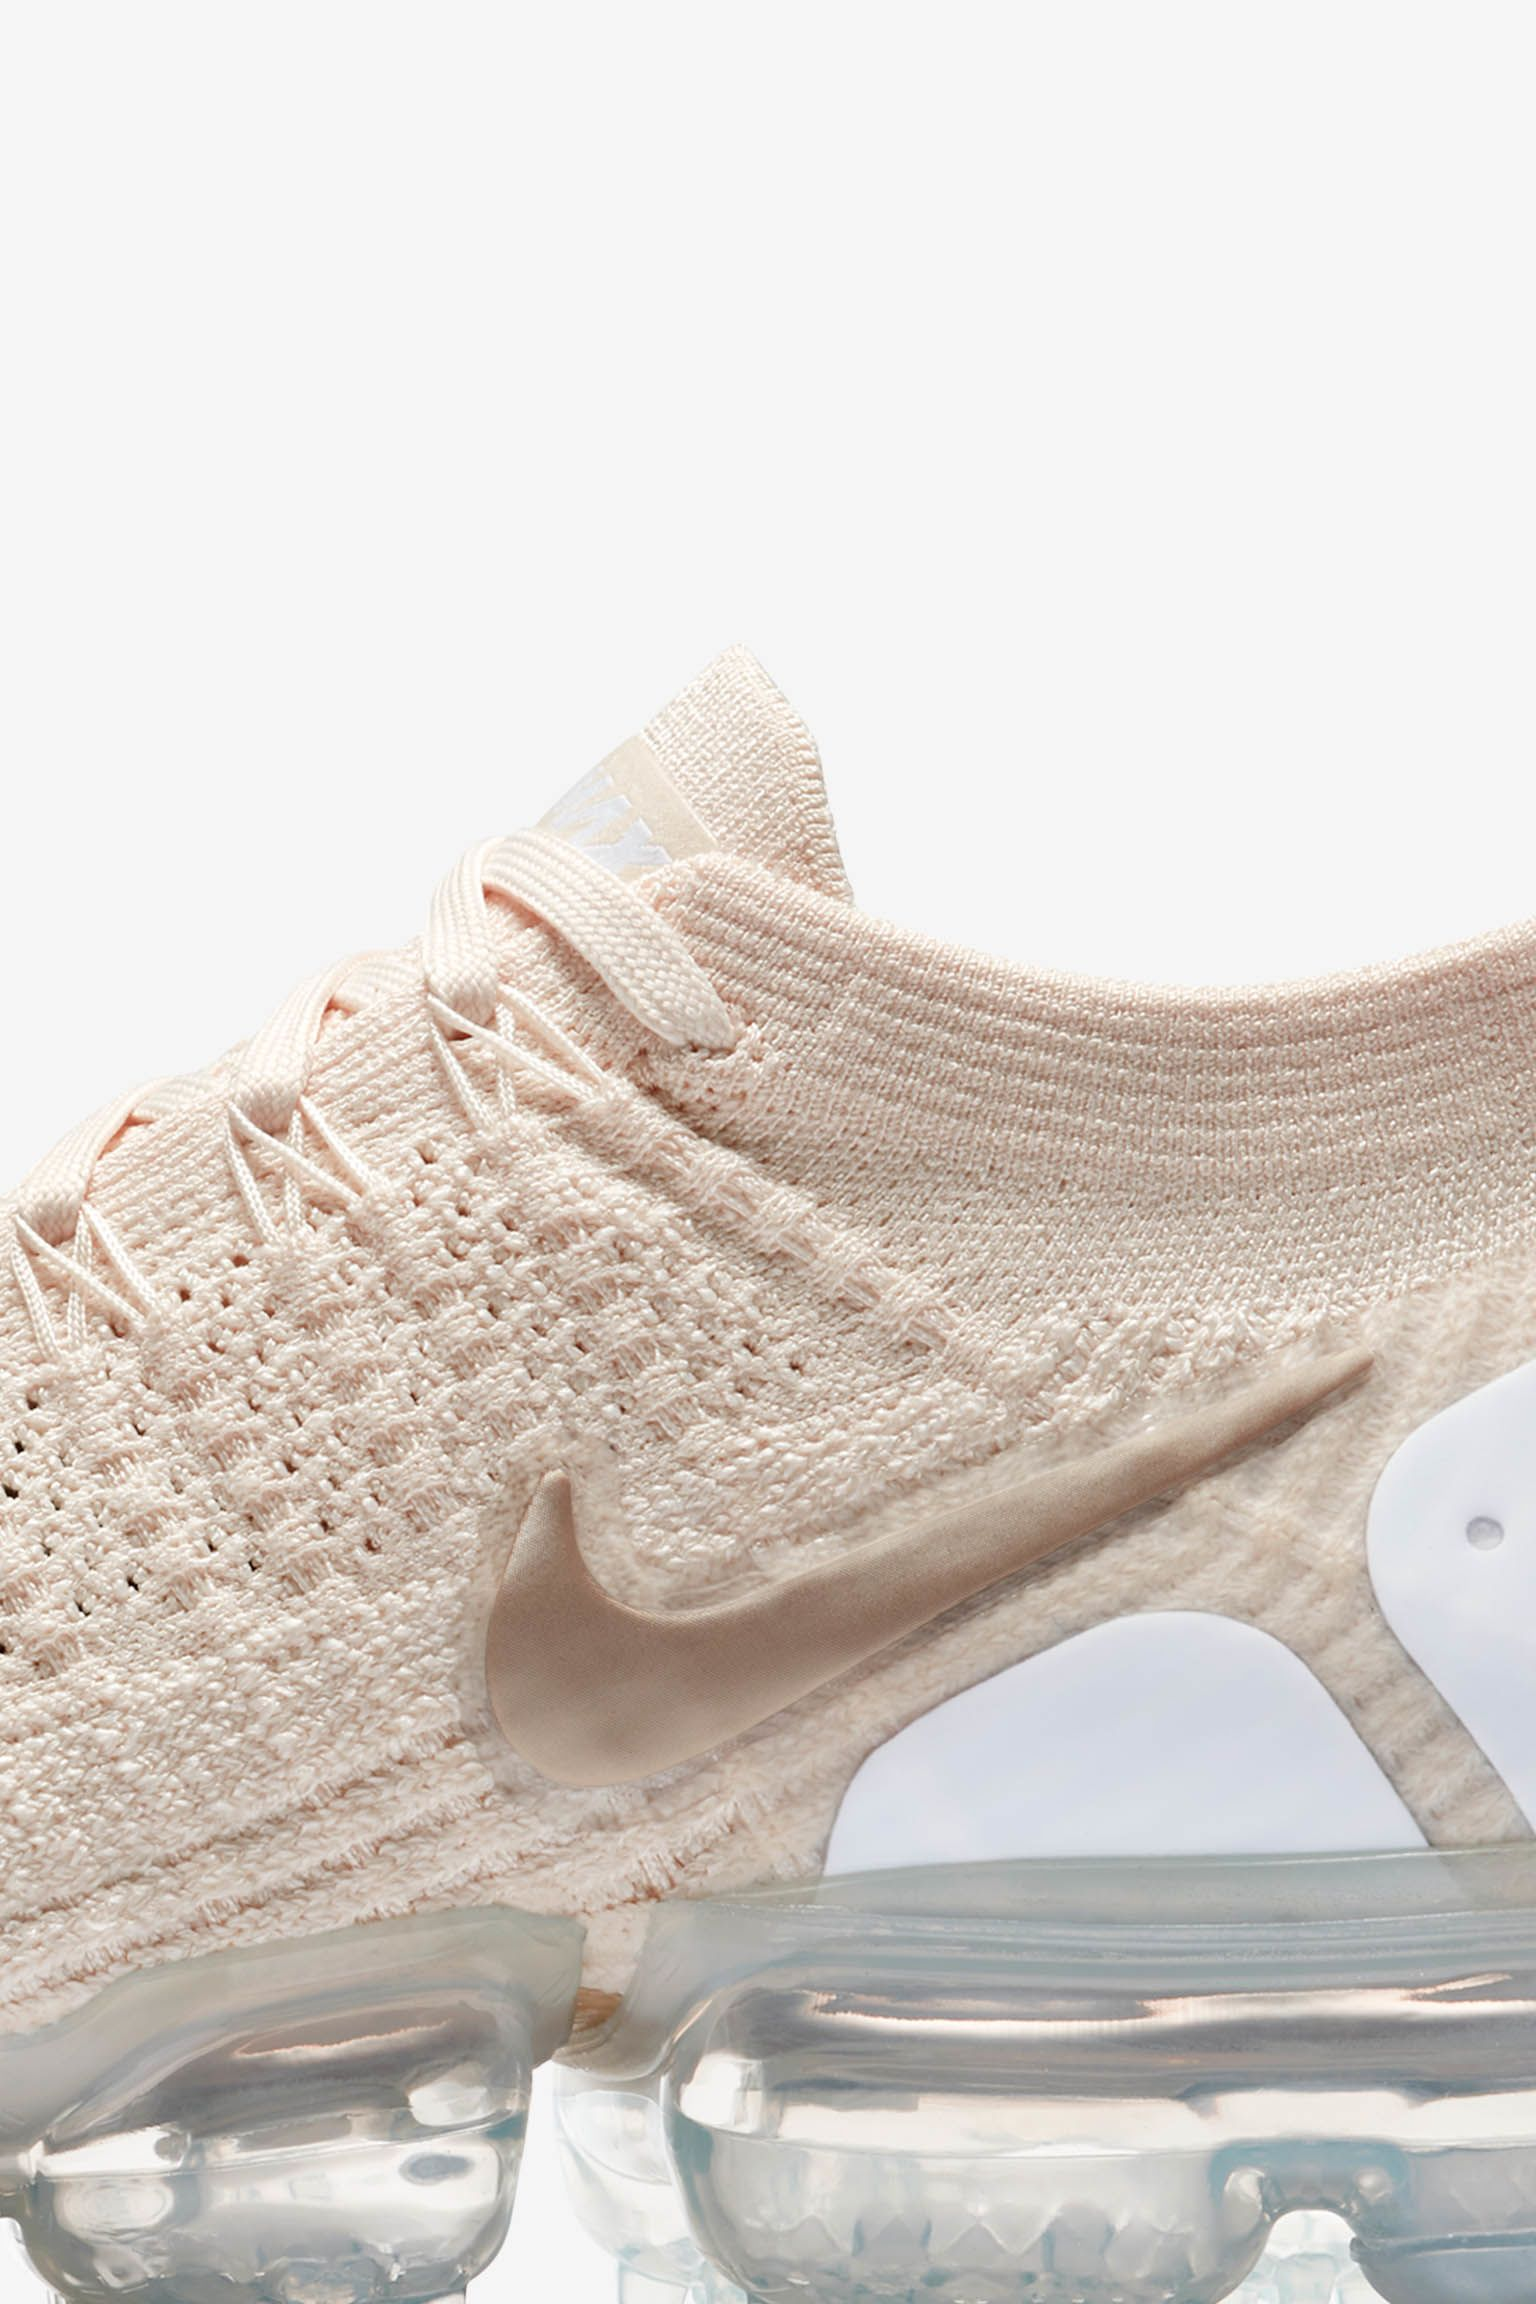 Nike Womens Air Vapormax 2 'Light Cream & Metallic Gold Star' Release Date